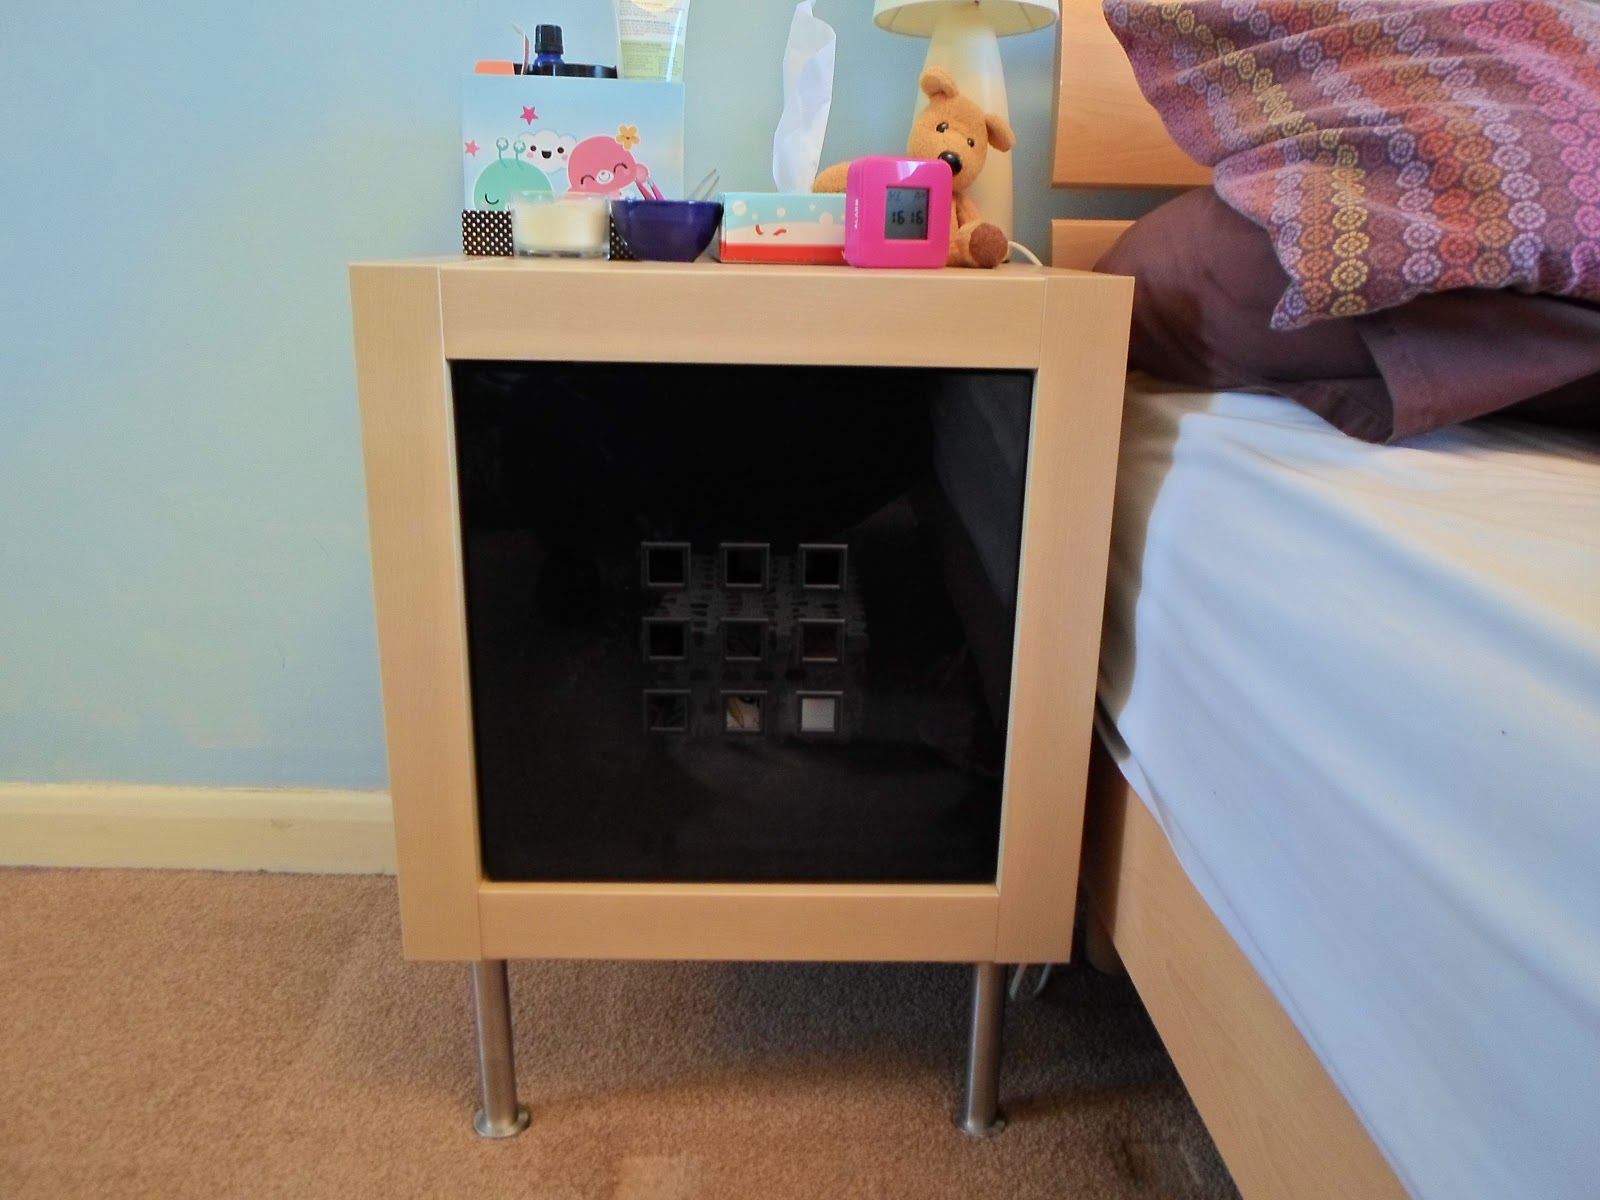 Ikea hack expedit bedside table sugarpuffish ikea hack expedit bedside table watchthetrailerfo